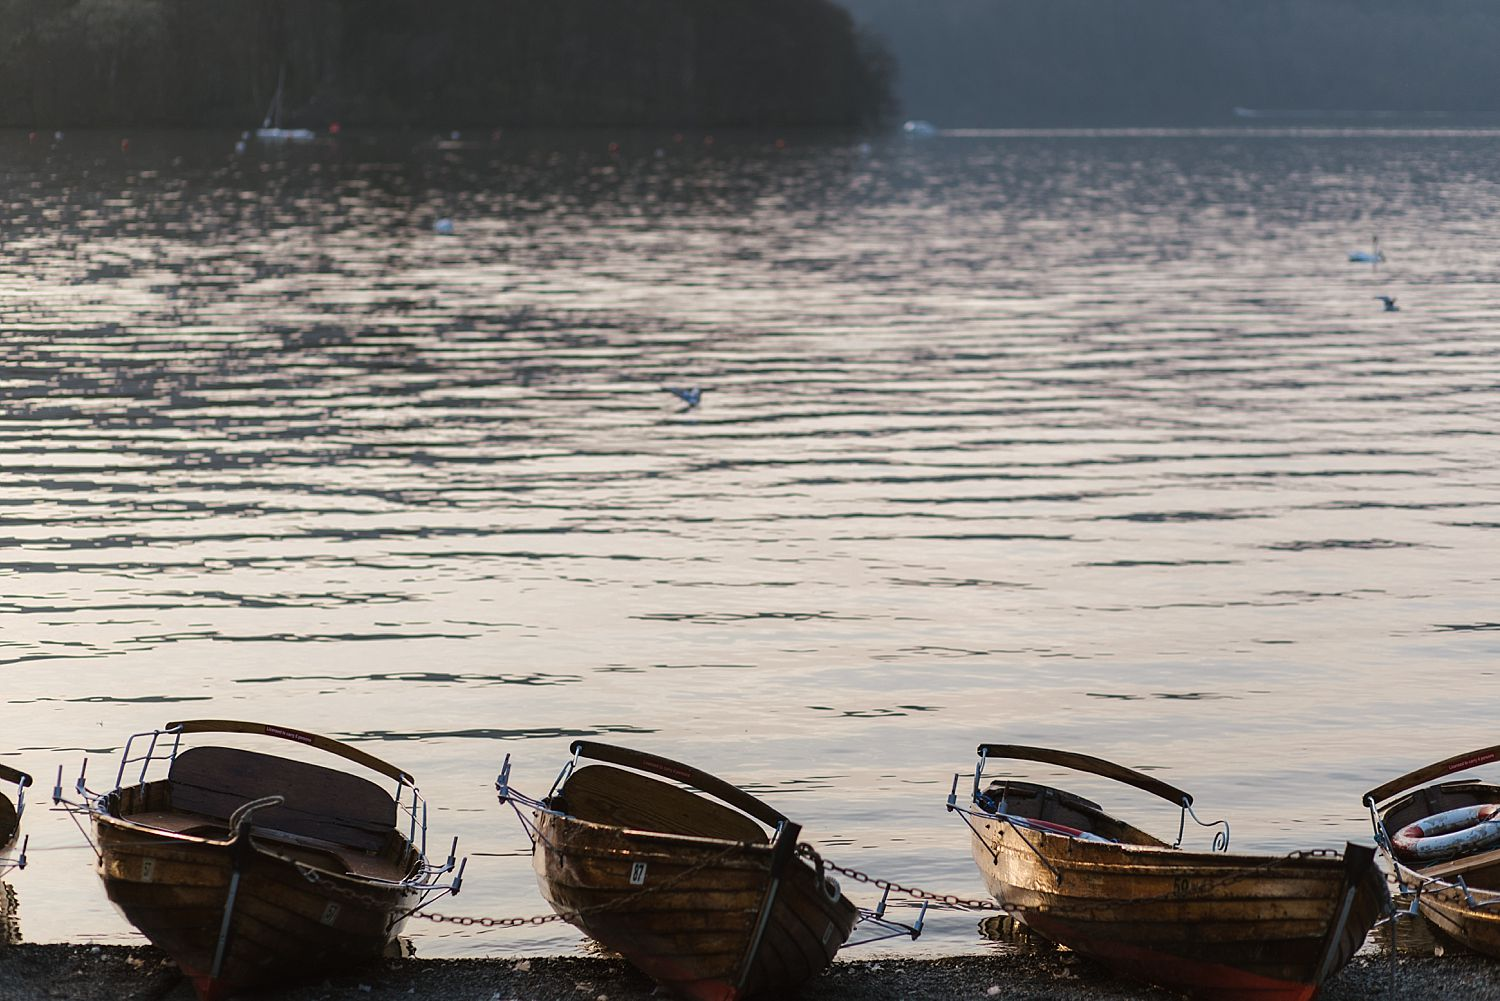 Evening view of rowing boats tied up on the side of Lake Windermere